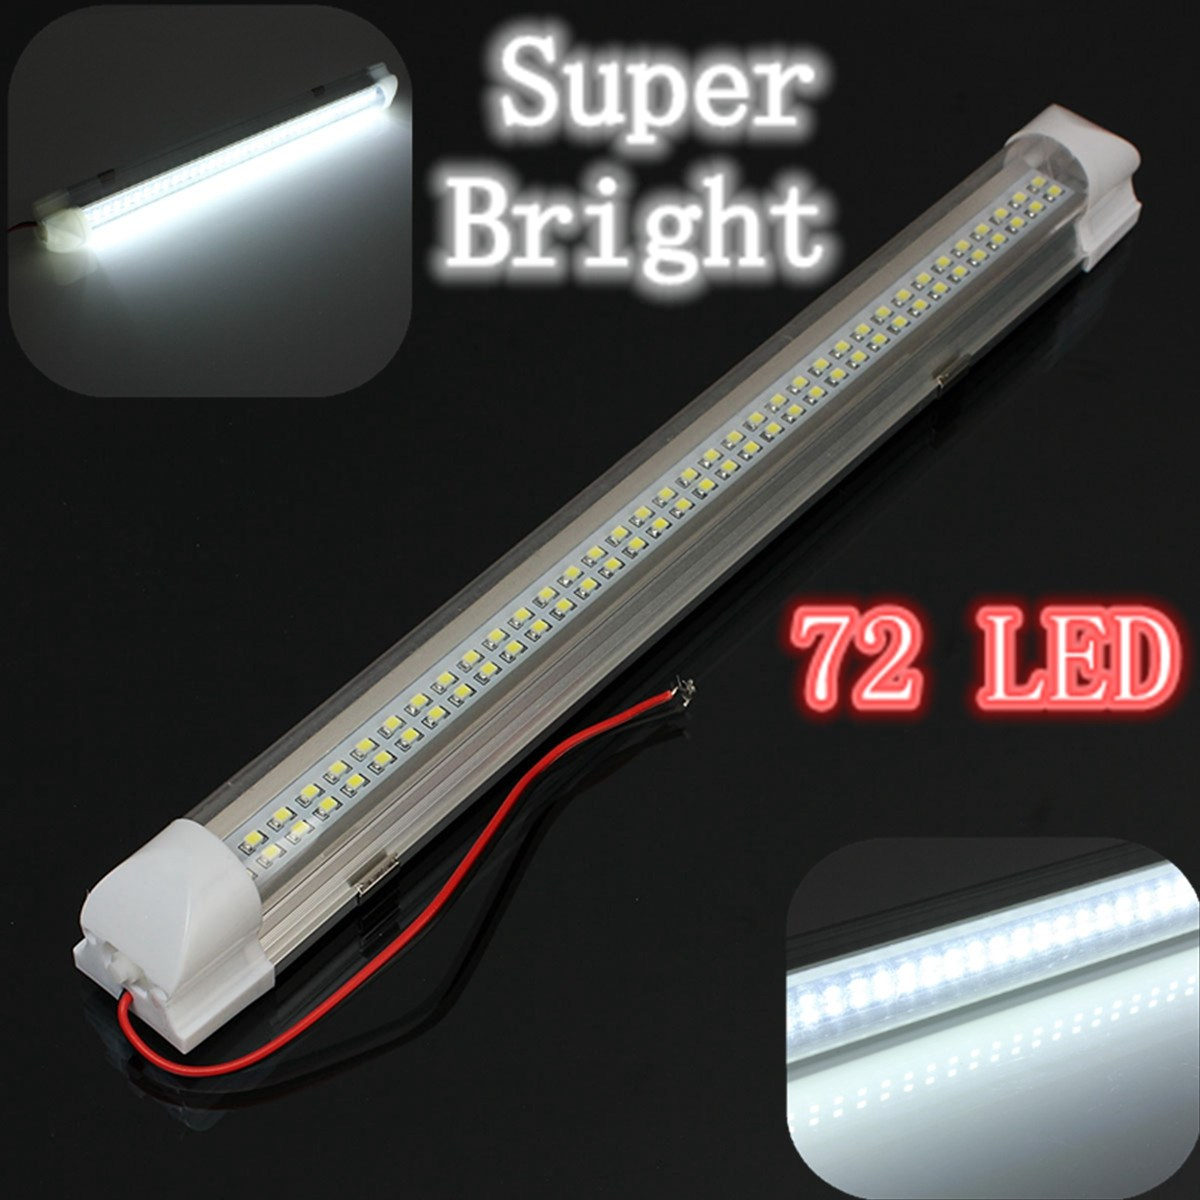 Brand new 12v universal car auto caravan interior 72 led white light brand new 12v universal car auto caravan interior 72 led white light strip bar 340mm lamp onoff switch in signal lamp from automobiles motorcycles on aloadofball Choice Image